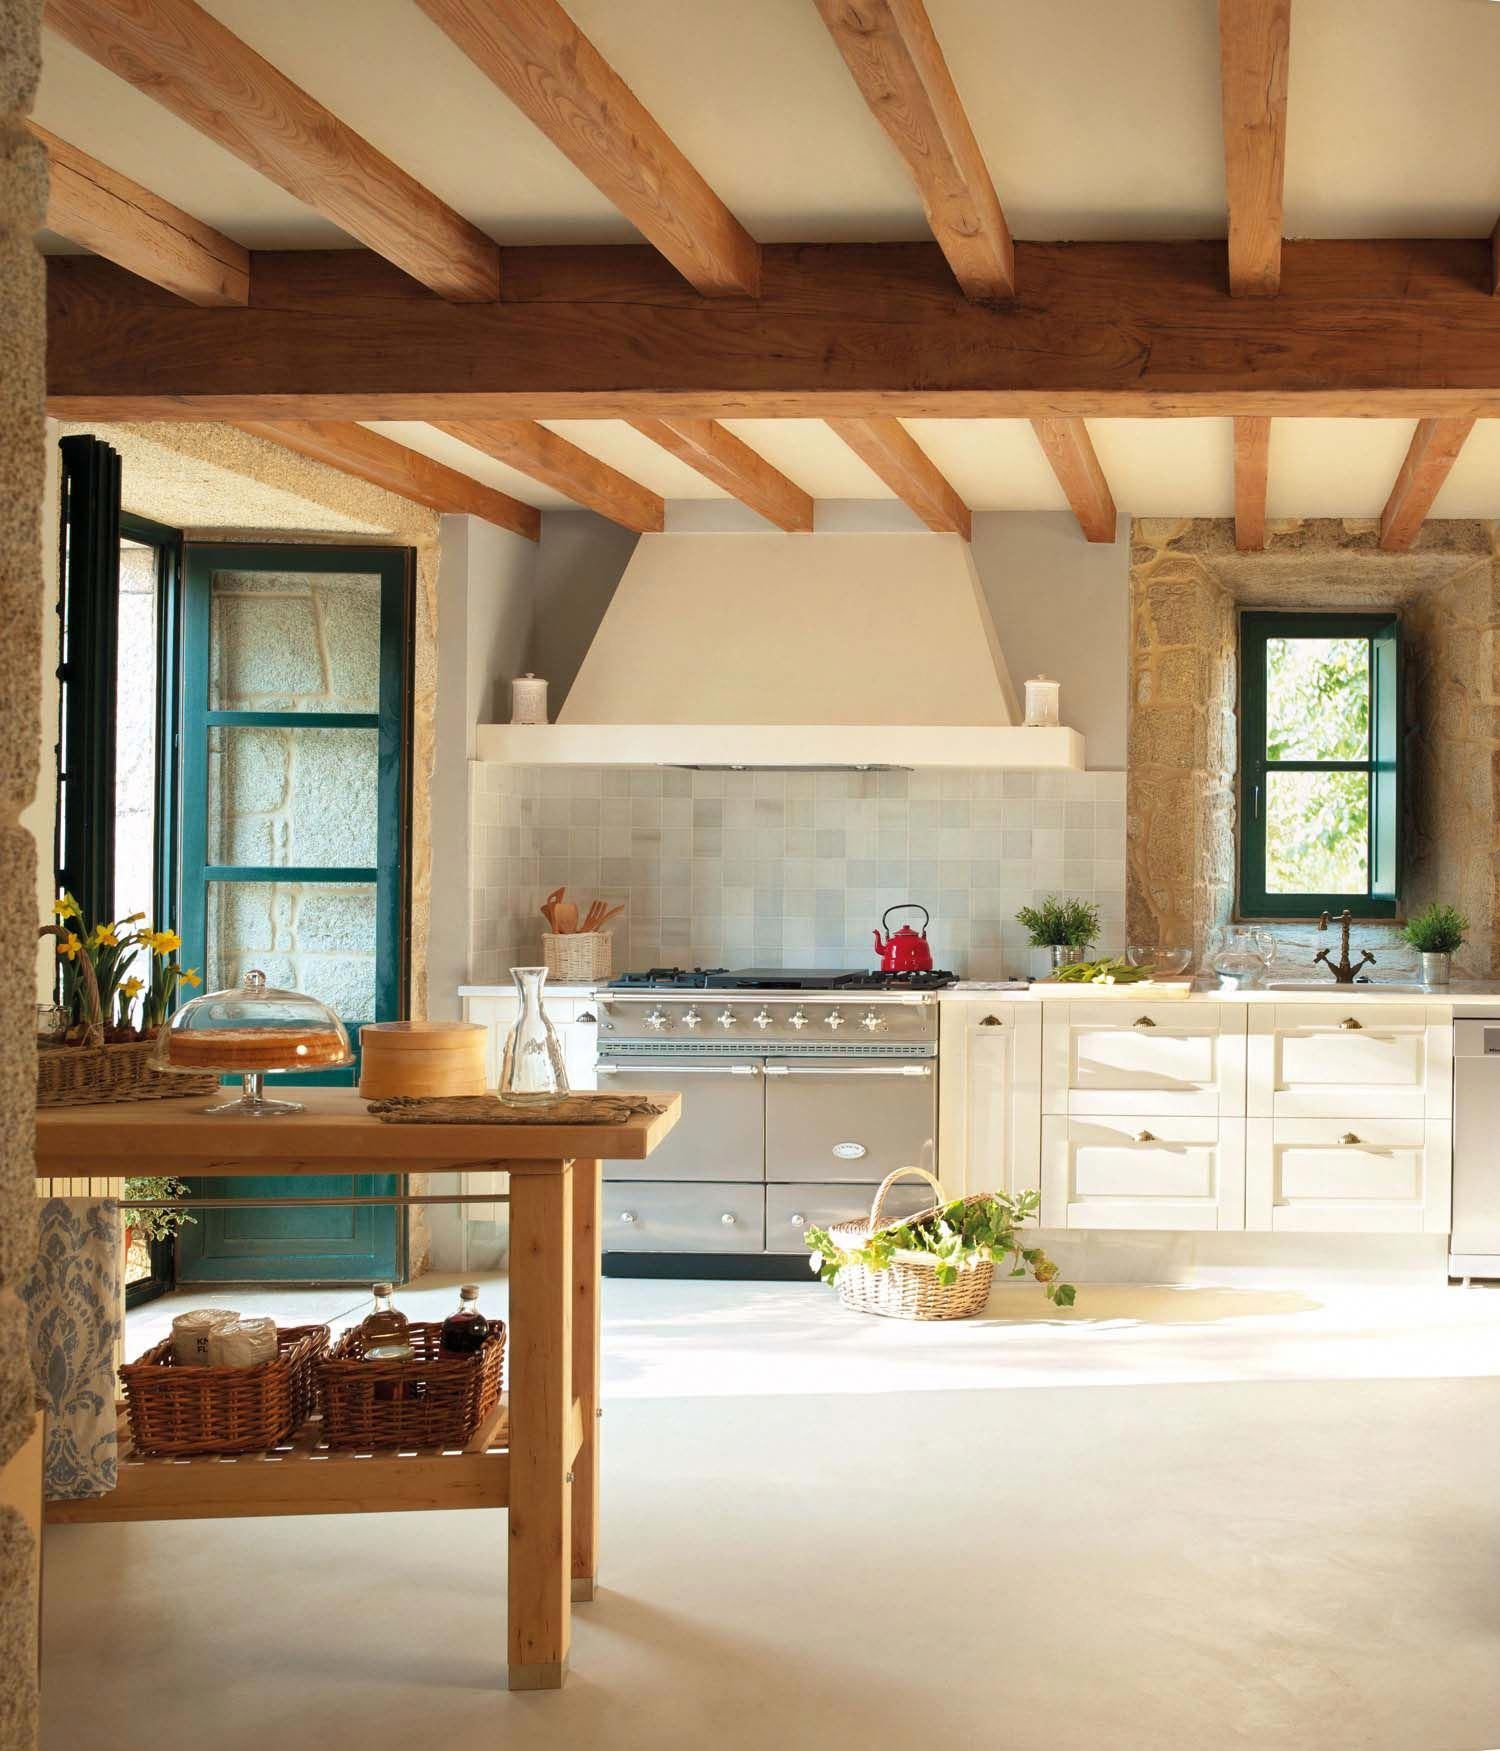 25 Captivating Ideas For Kitchens With Skylights: Captivating Rustic Home In The Spanish Countryside With